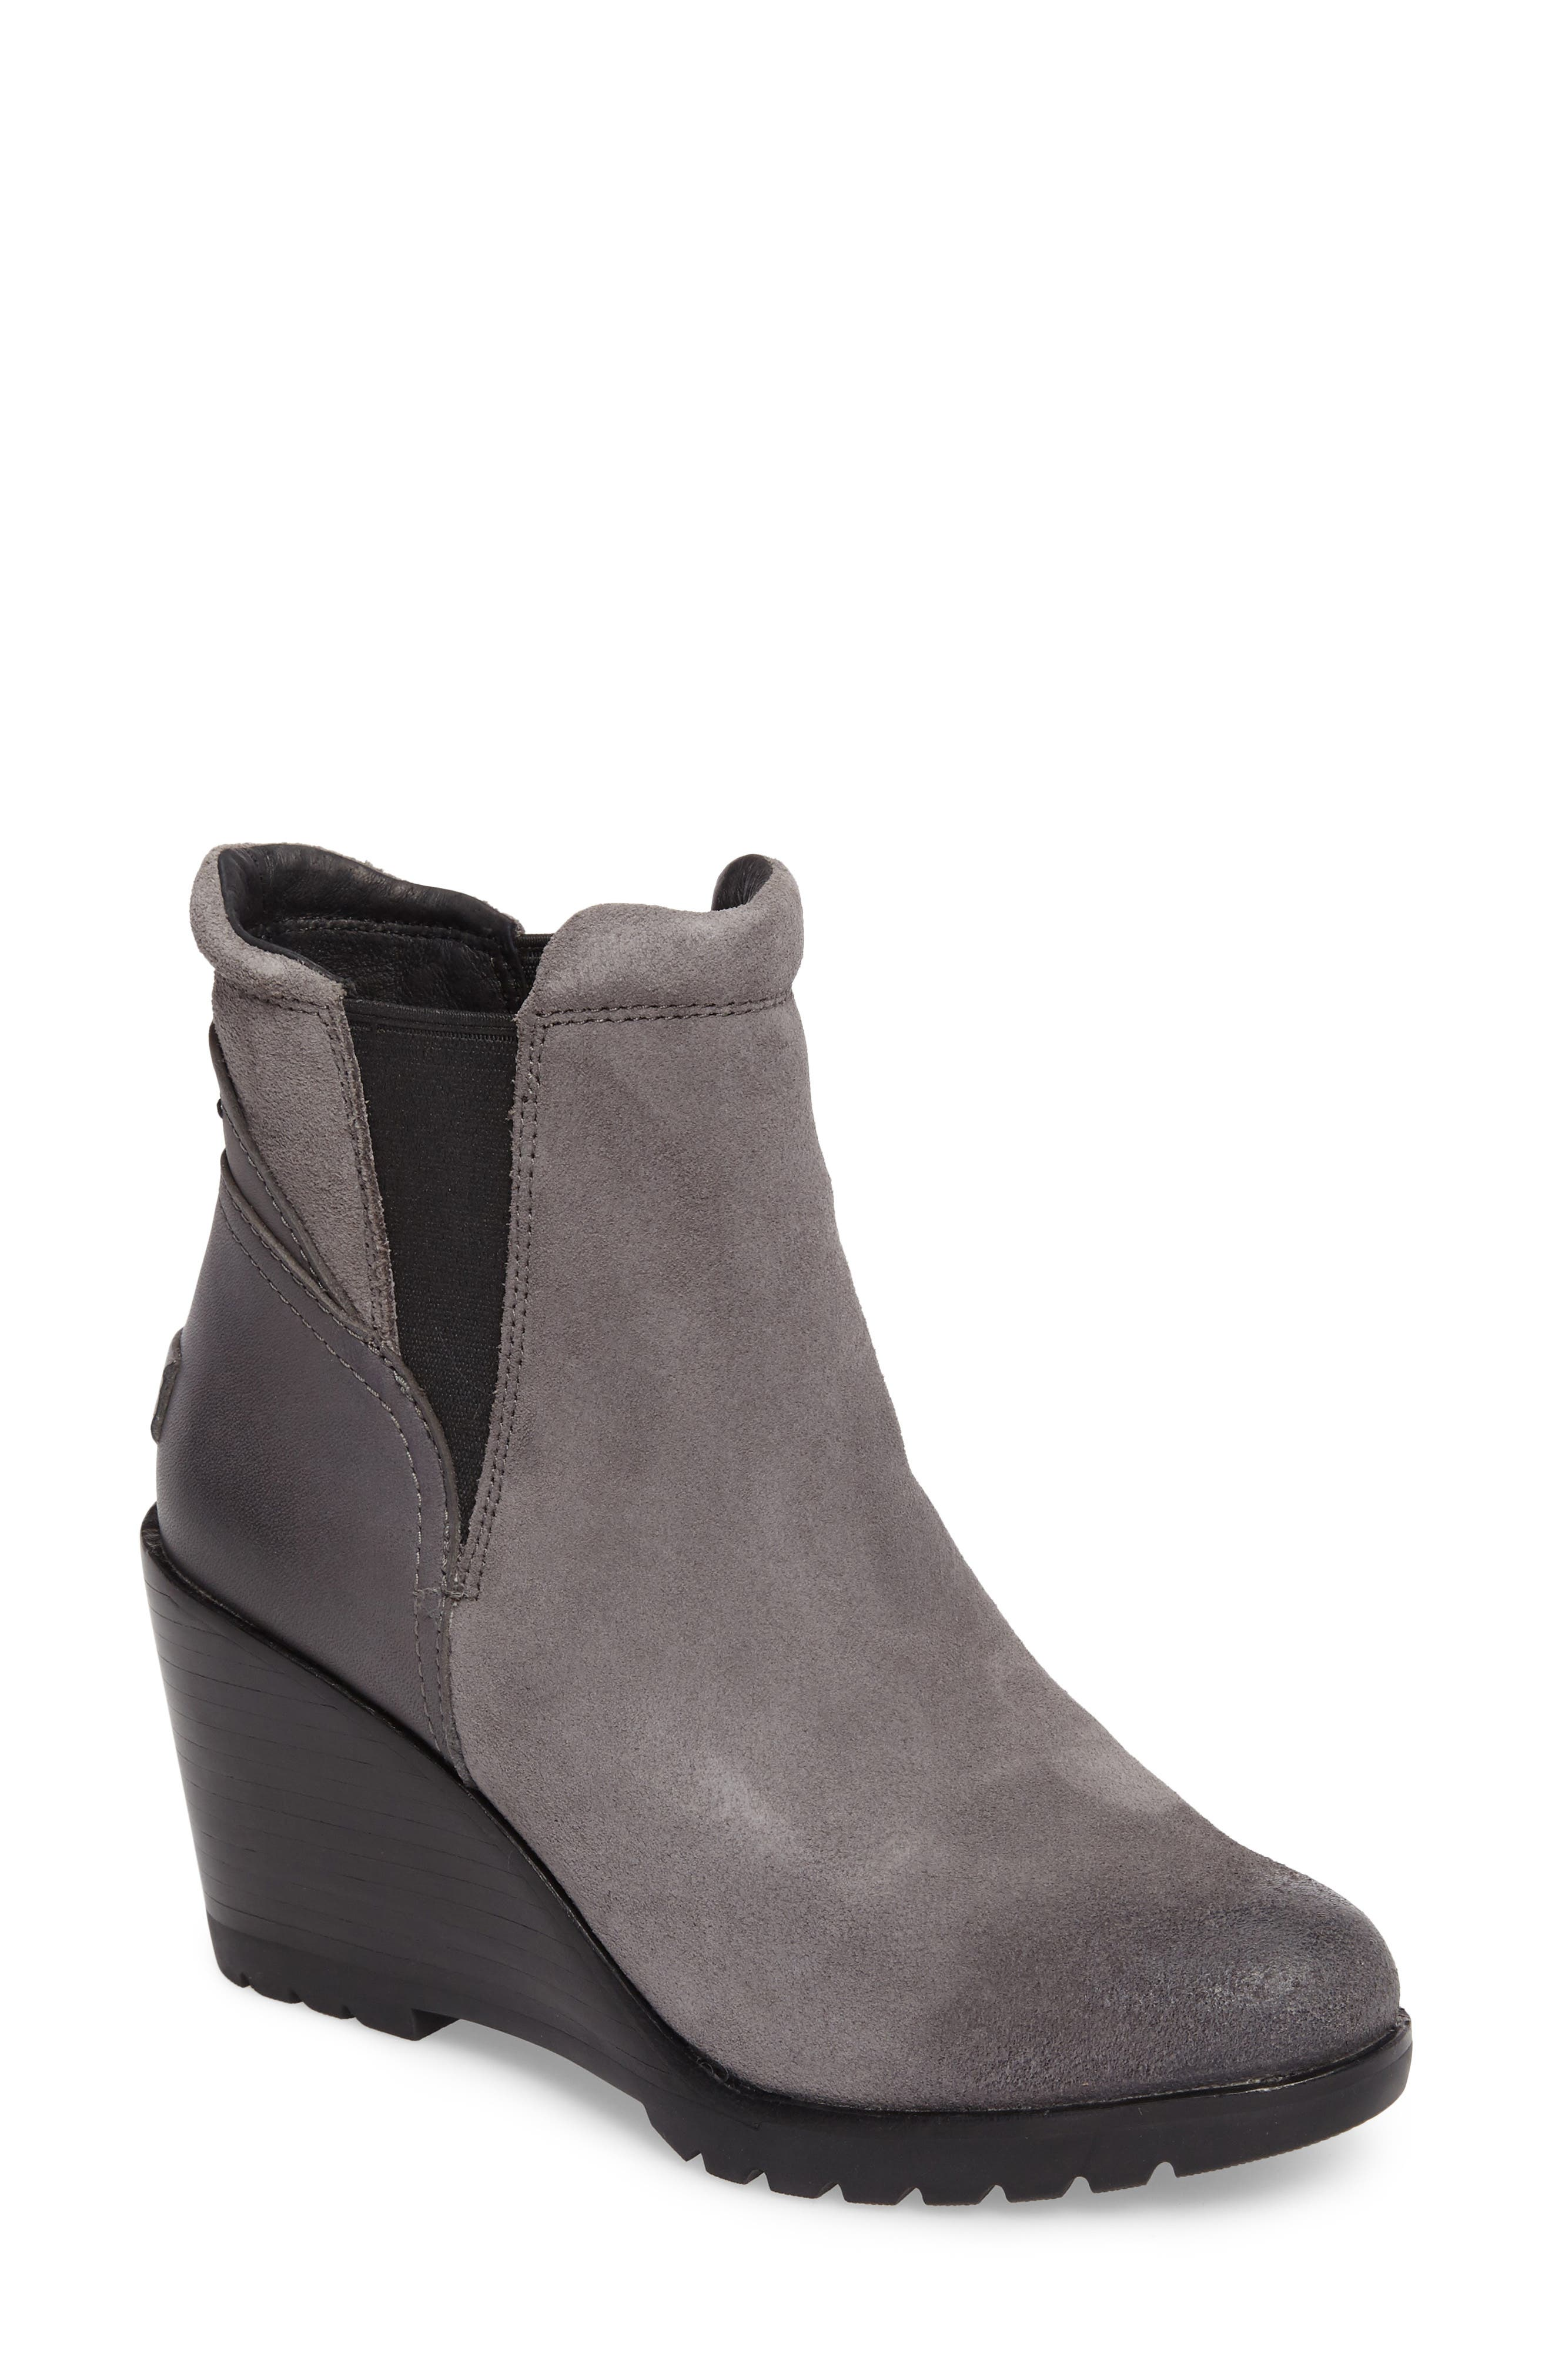 After Hours Chelsea Boot,                         Main,                         color, Quarry